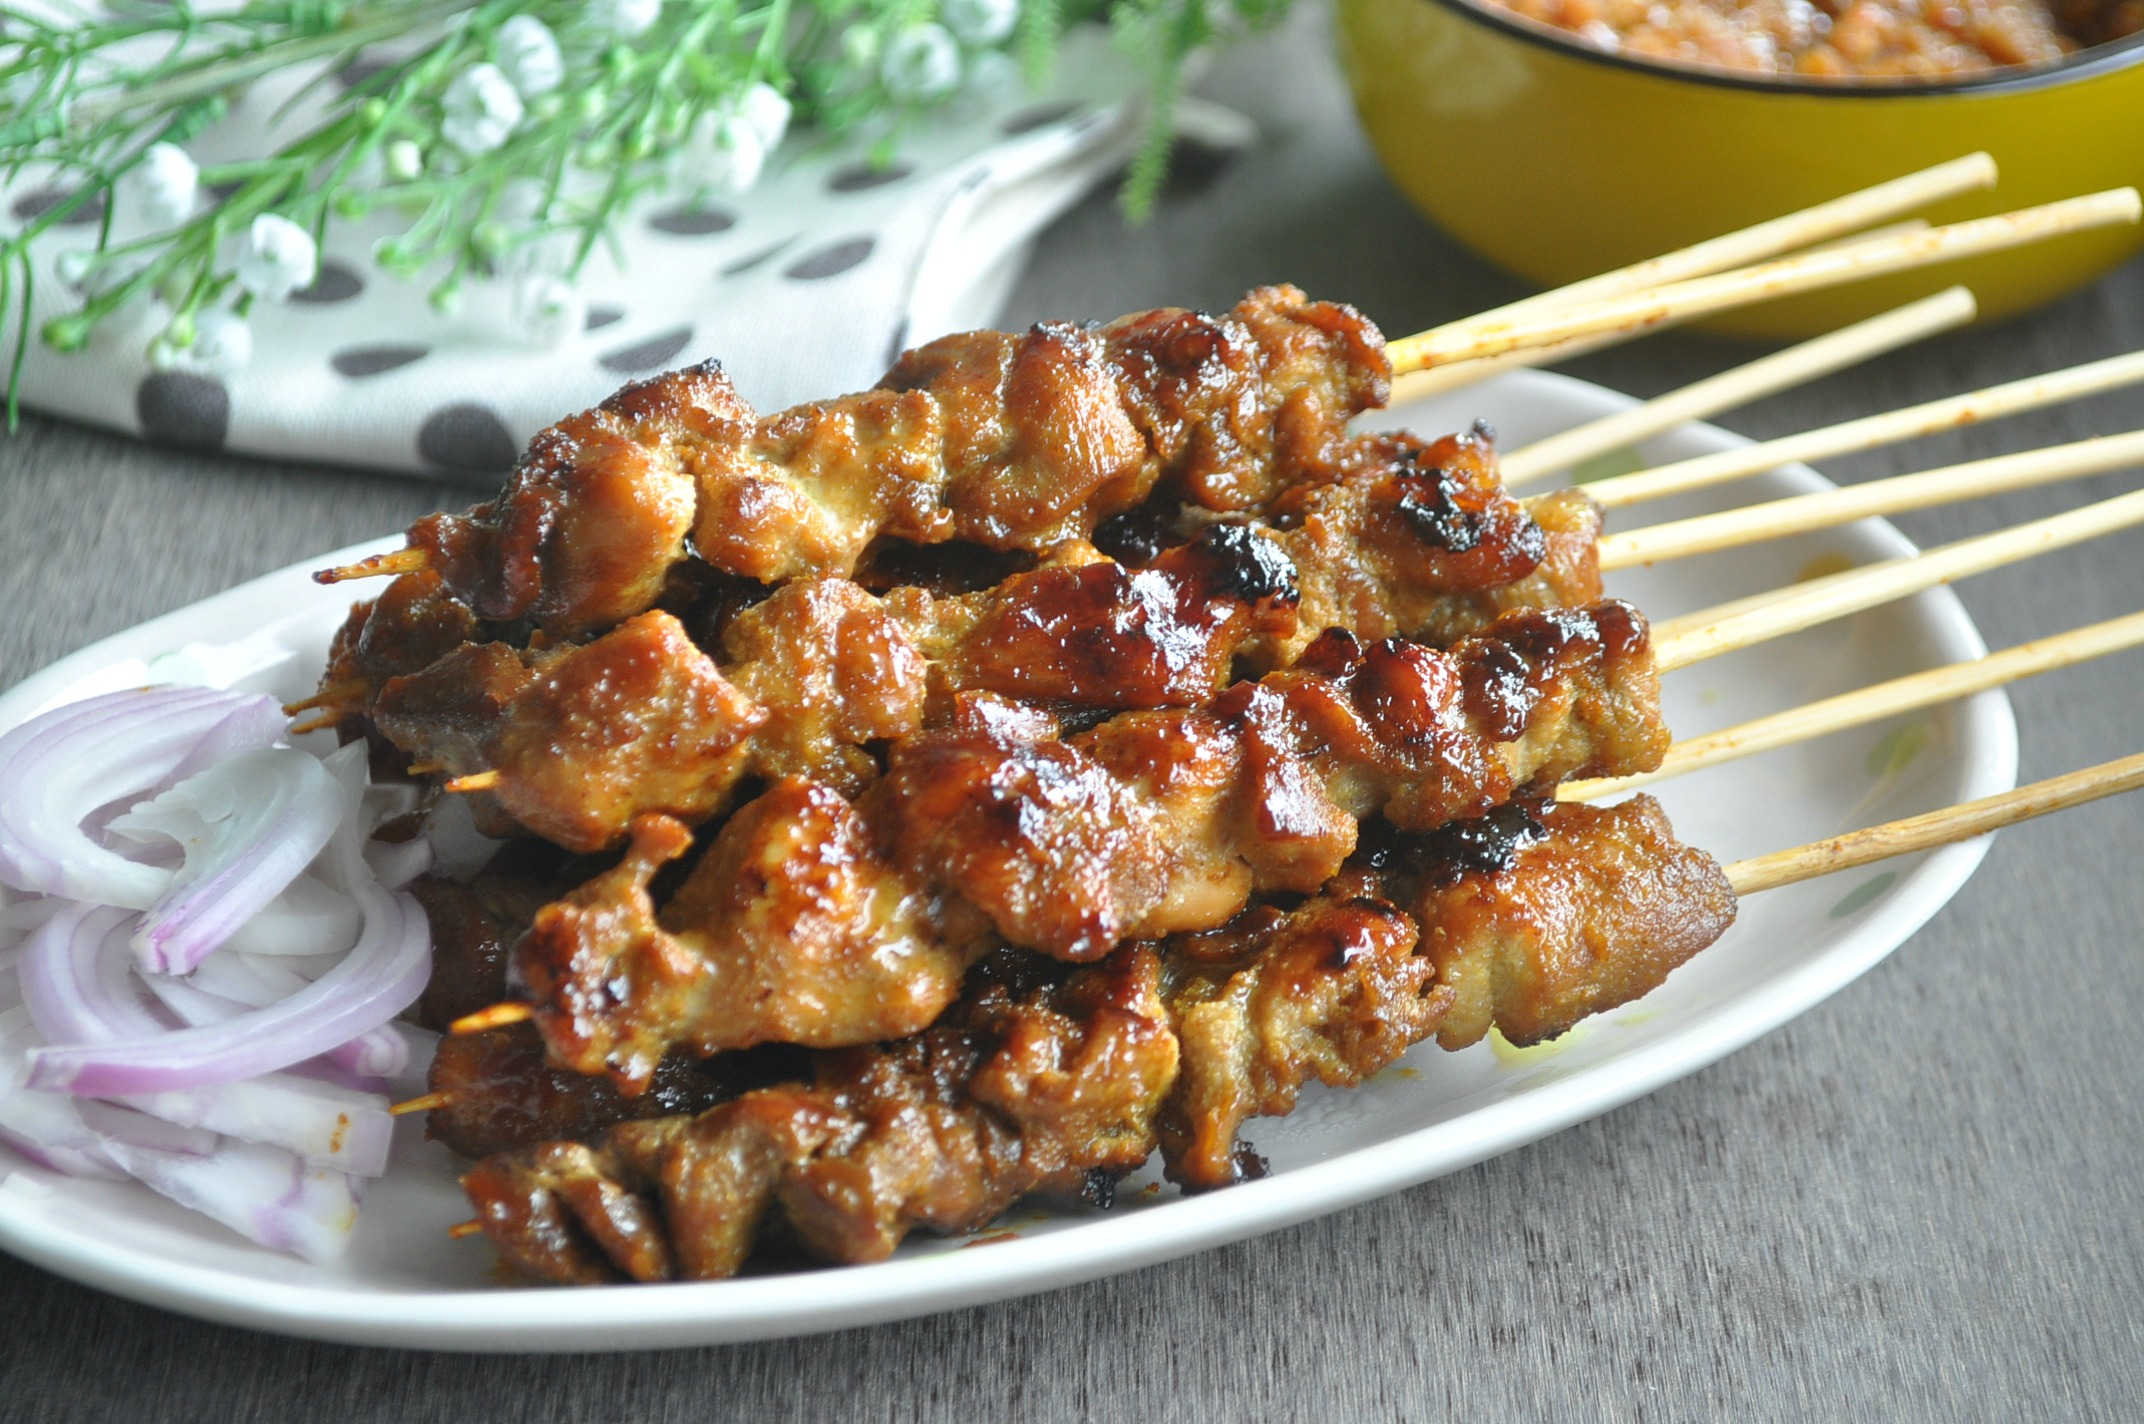 ... row i experimented with both the pork and chicken satay as well as the